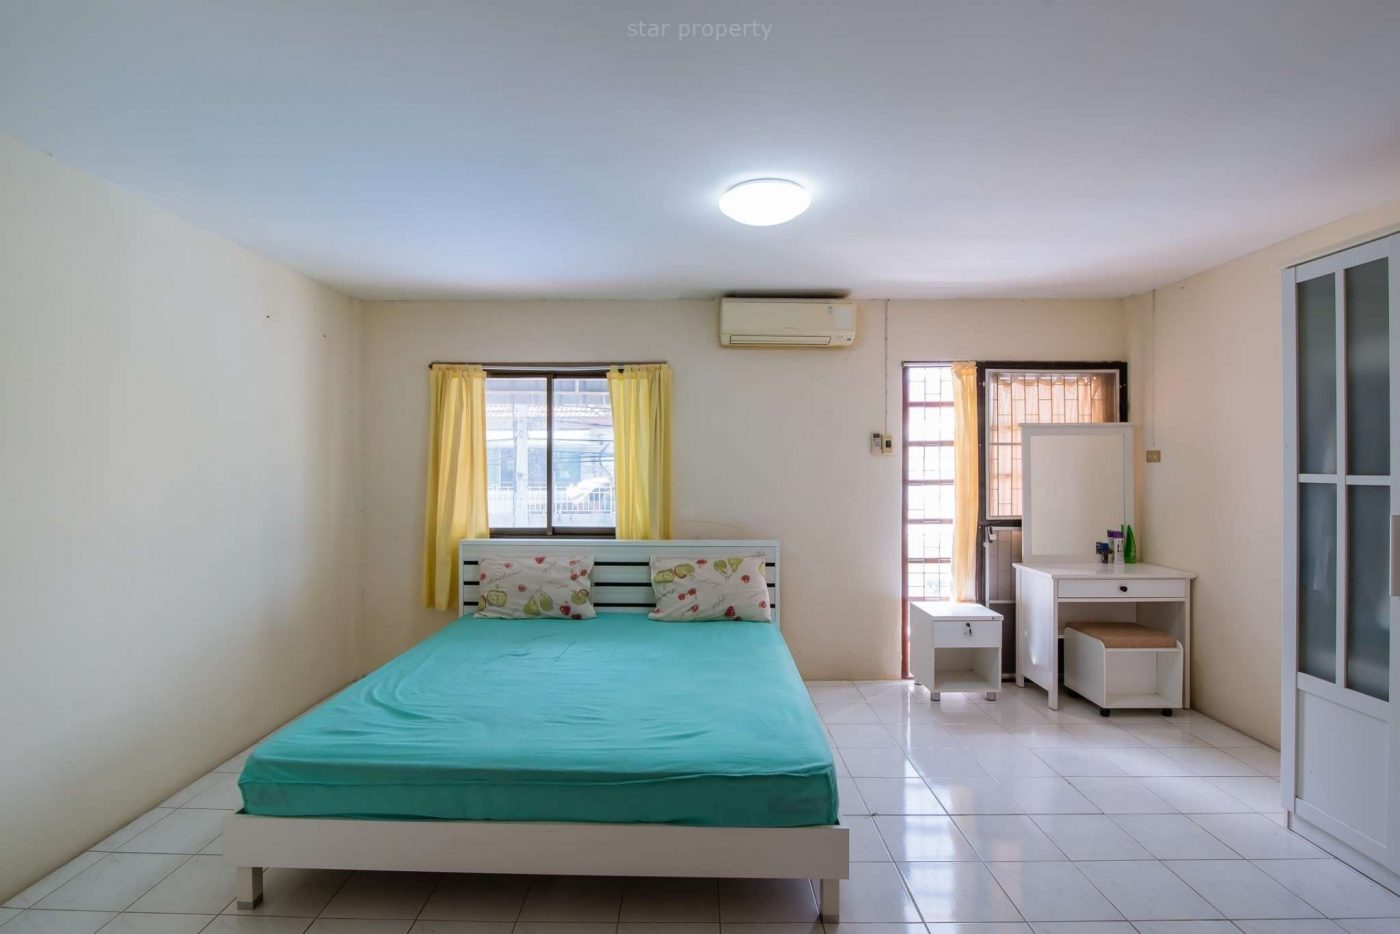 2 bedroom townhouse fully furnished for rent